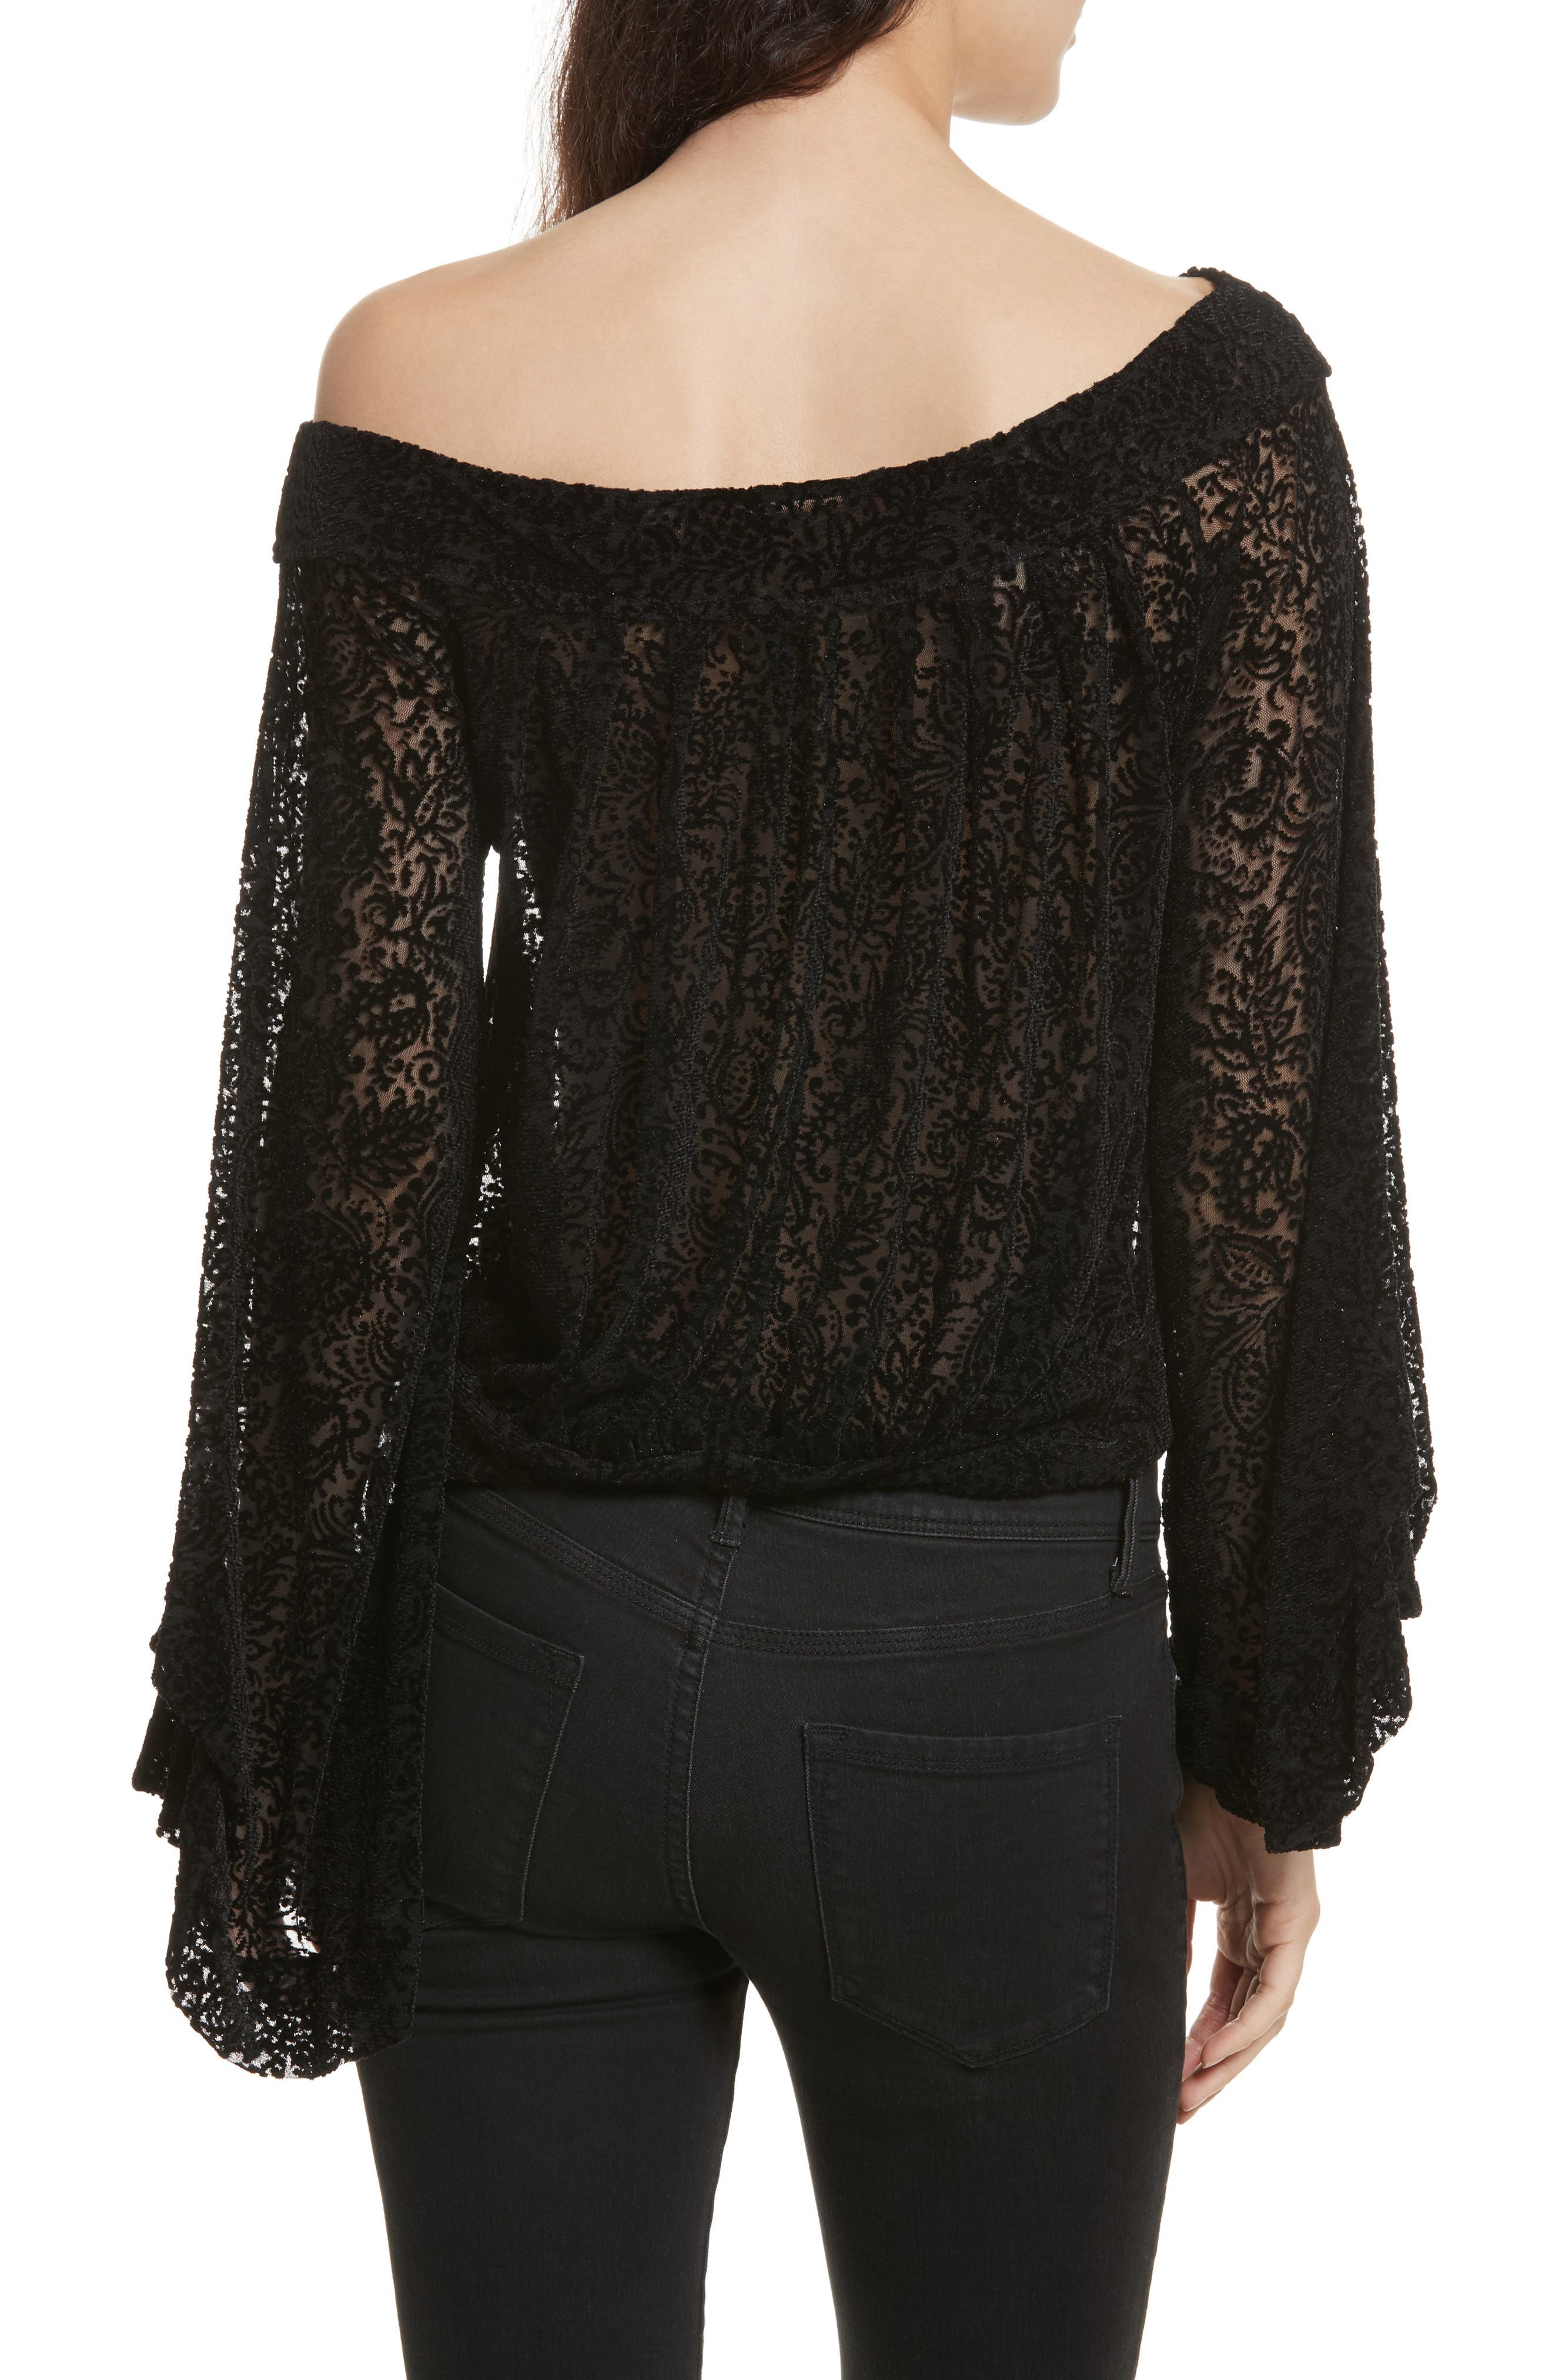 FREE PEOPLE,                             Ginger Berry Off the Shoulder Velvet Top,                             Alternate thumbnail 2, color,                             019